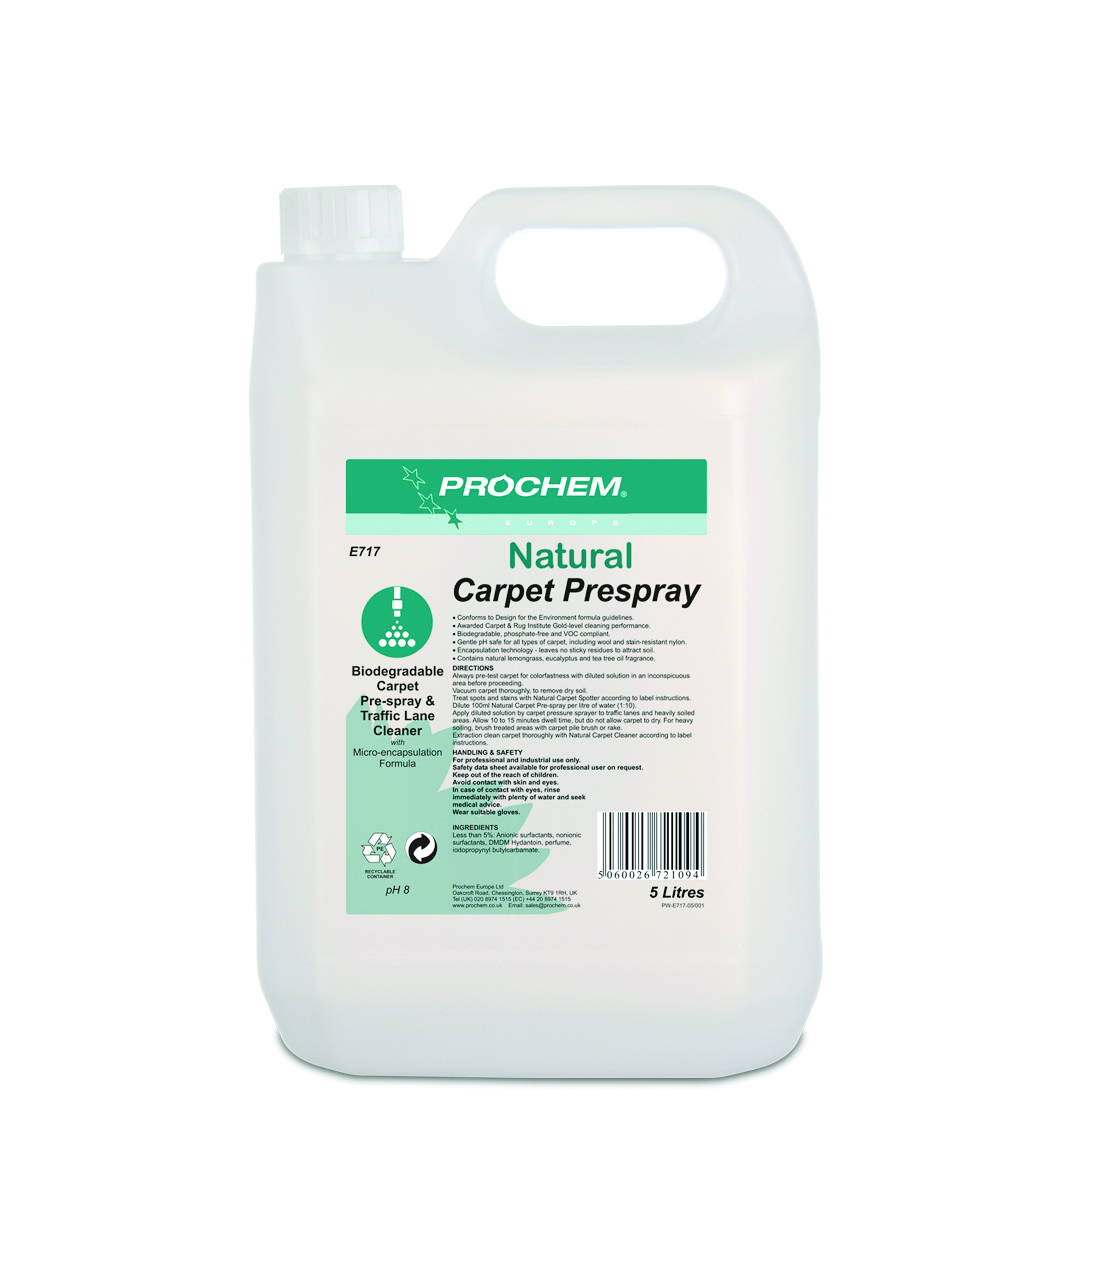 PROCHEM Natural Carpet & Upholstery Prespray 5L